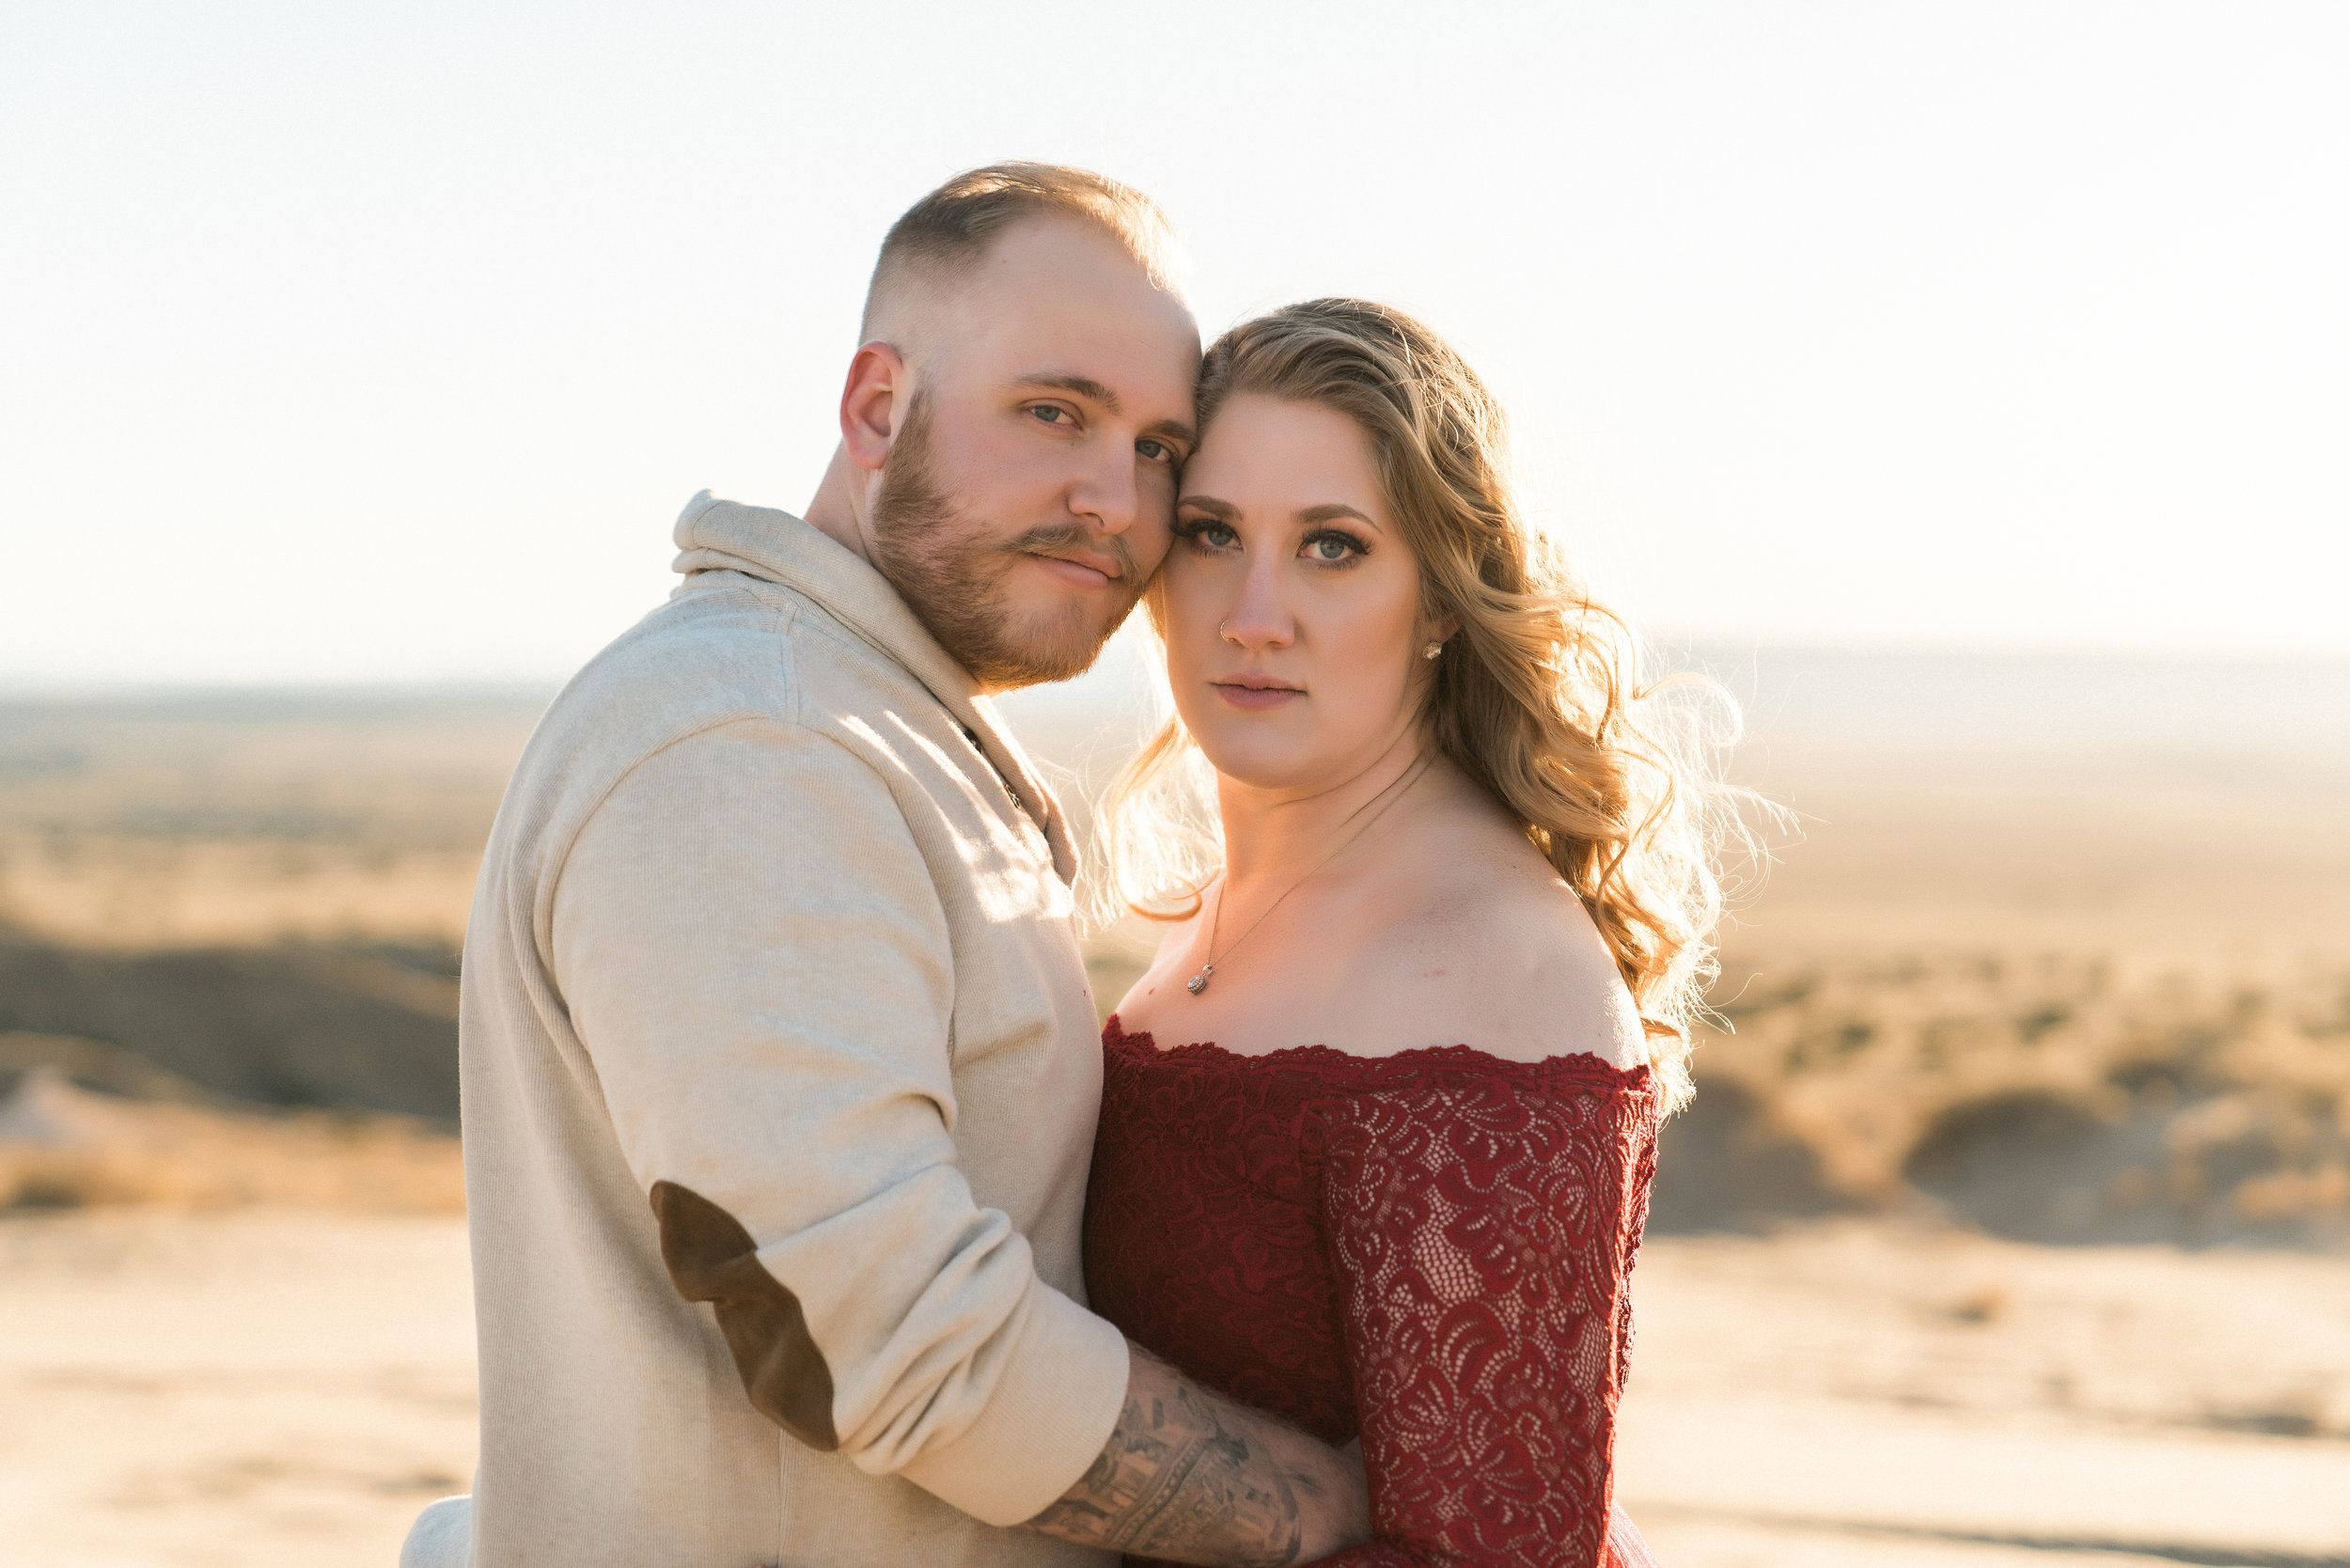 NewMexico-Sand-Dunes-Engagement-Carissa-and-Ben-1168.jpg